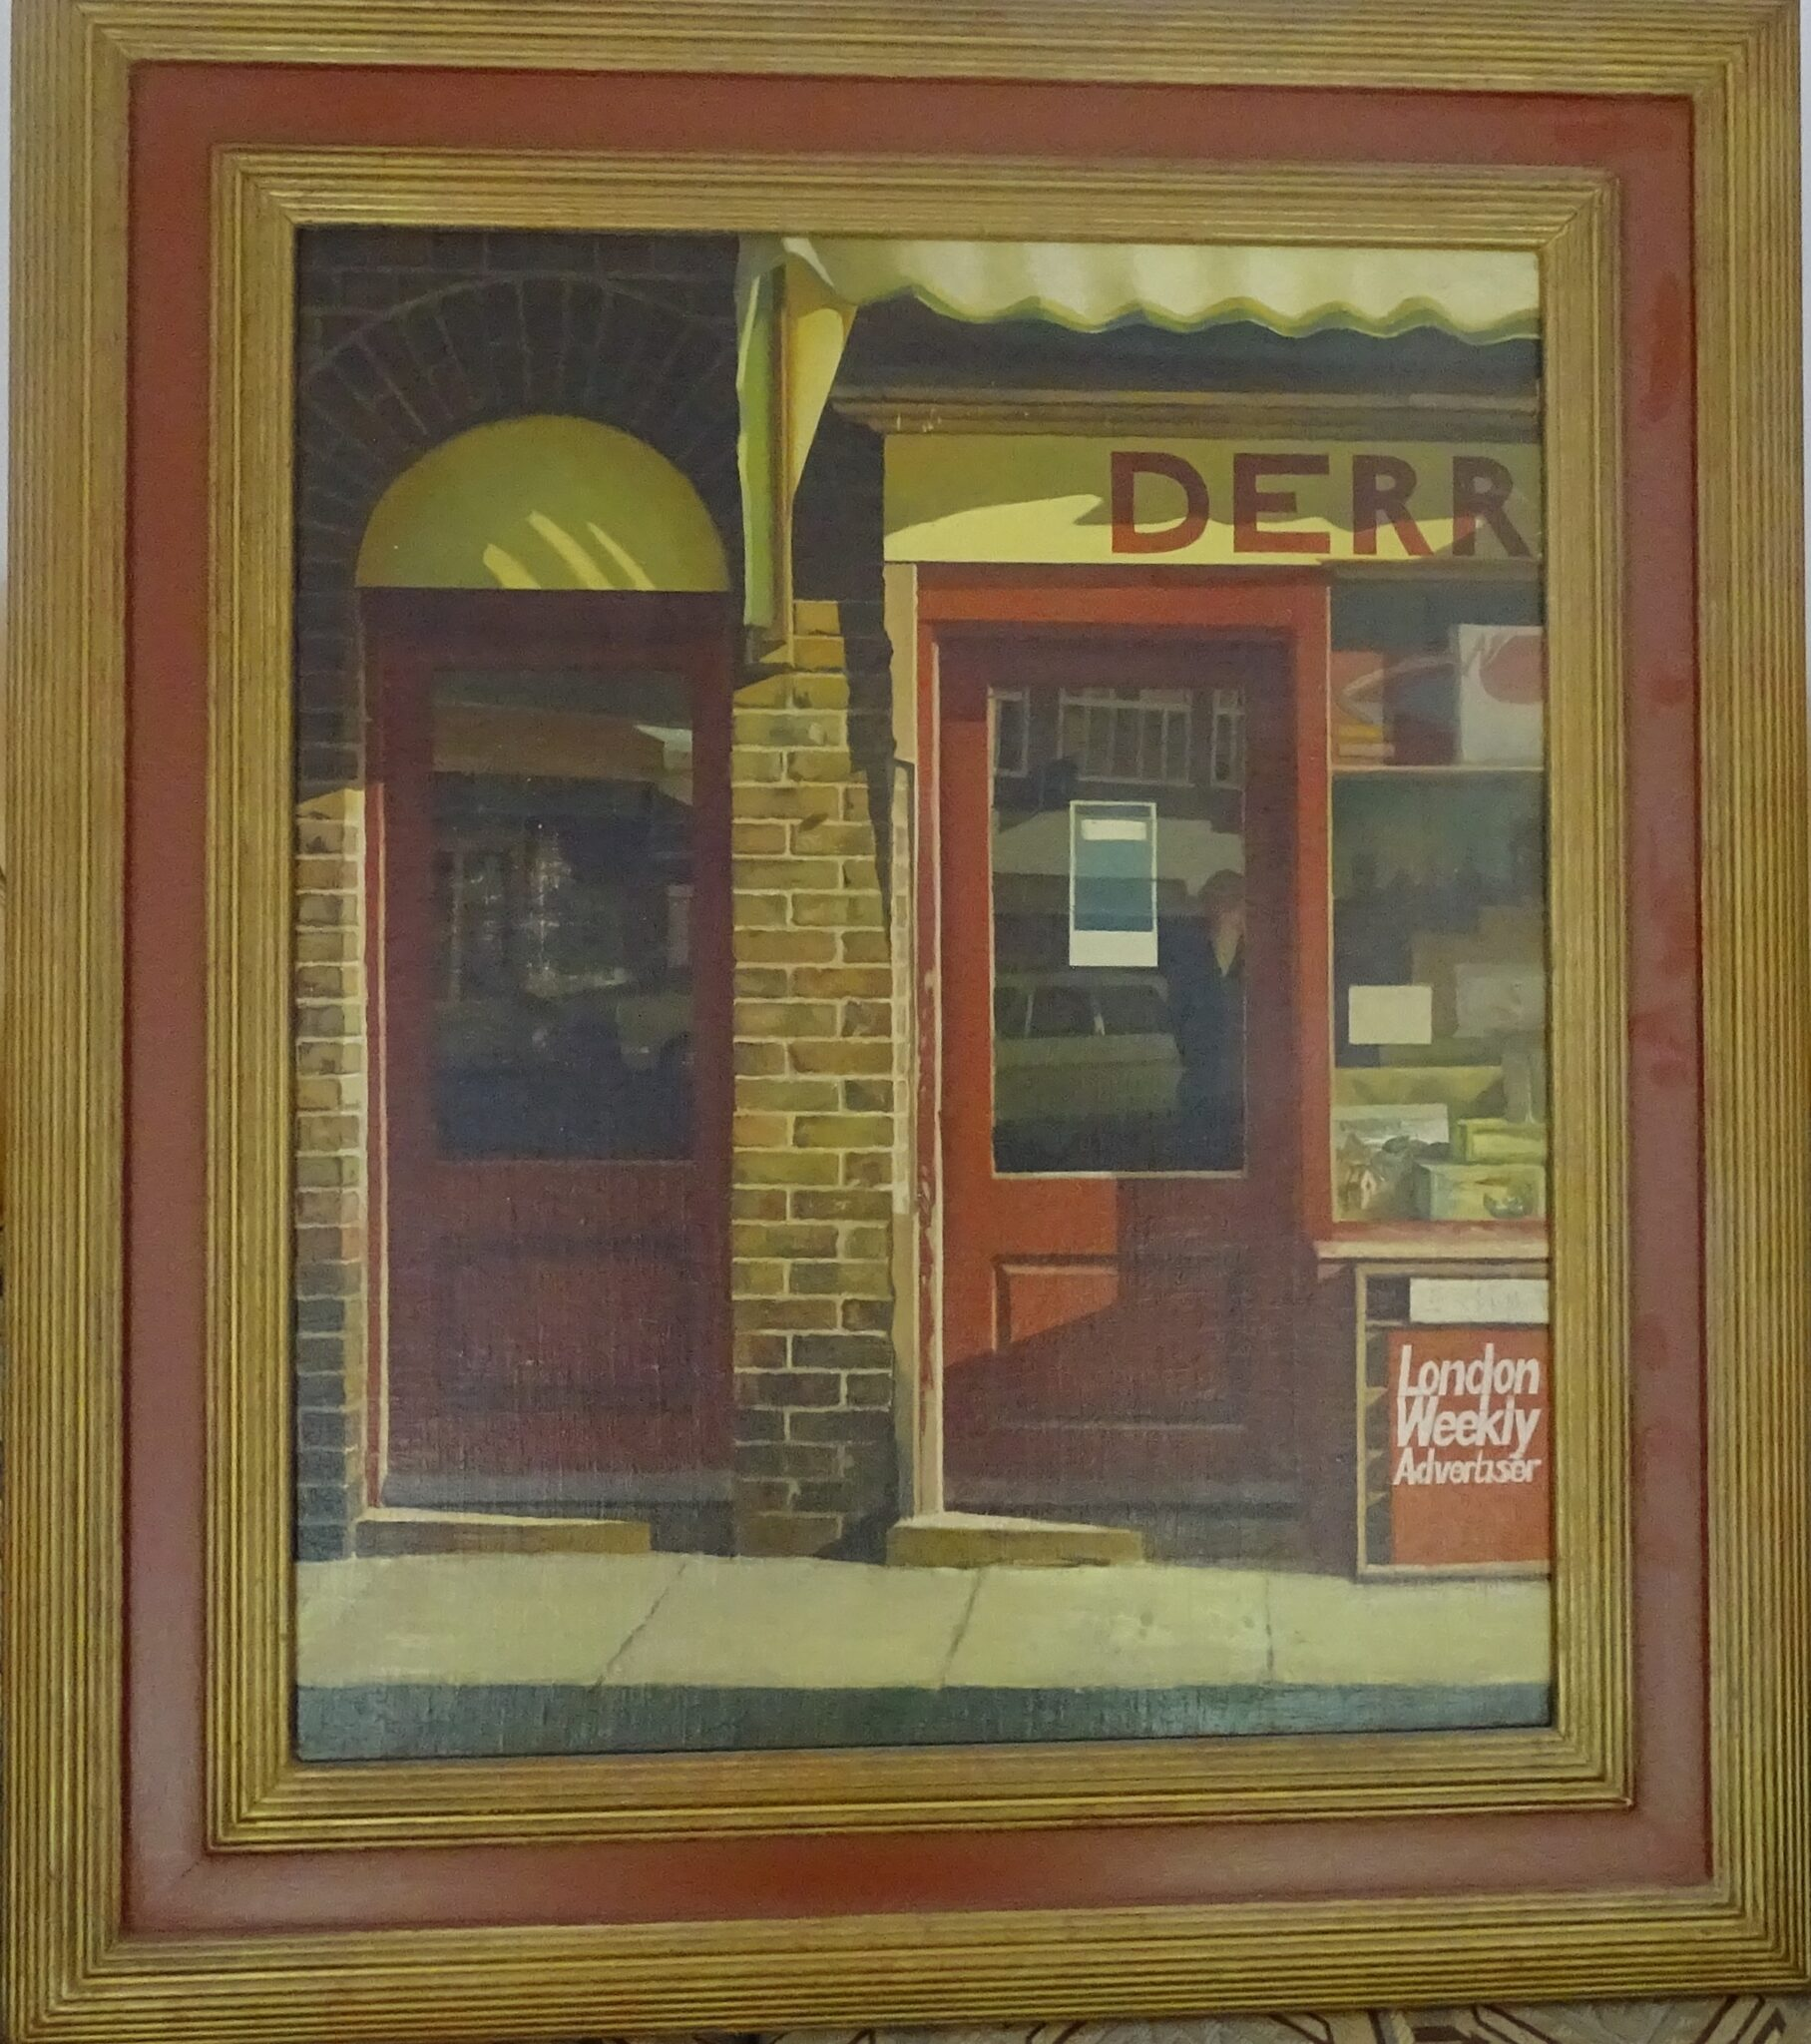 CLIFFORD CHARMAN, AN ARTIST OF 1950s LONDON and SOUTH EAST ENGLAND